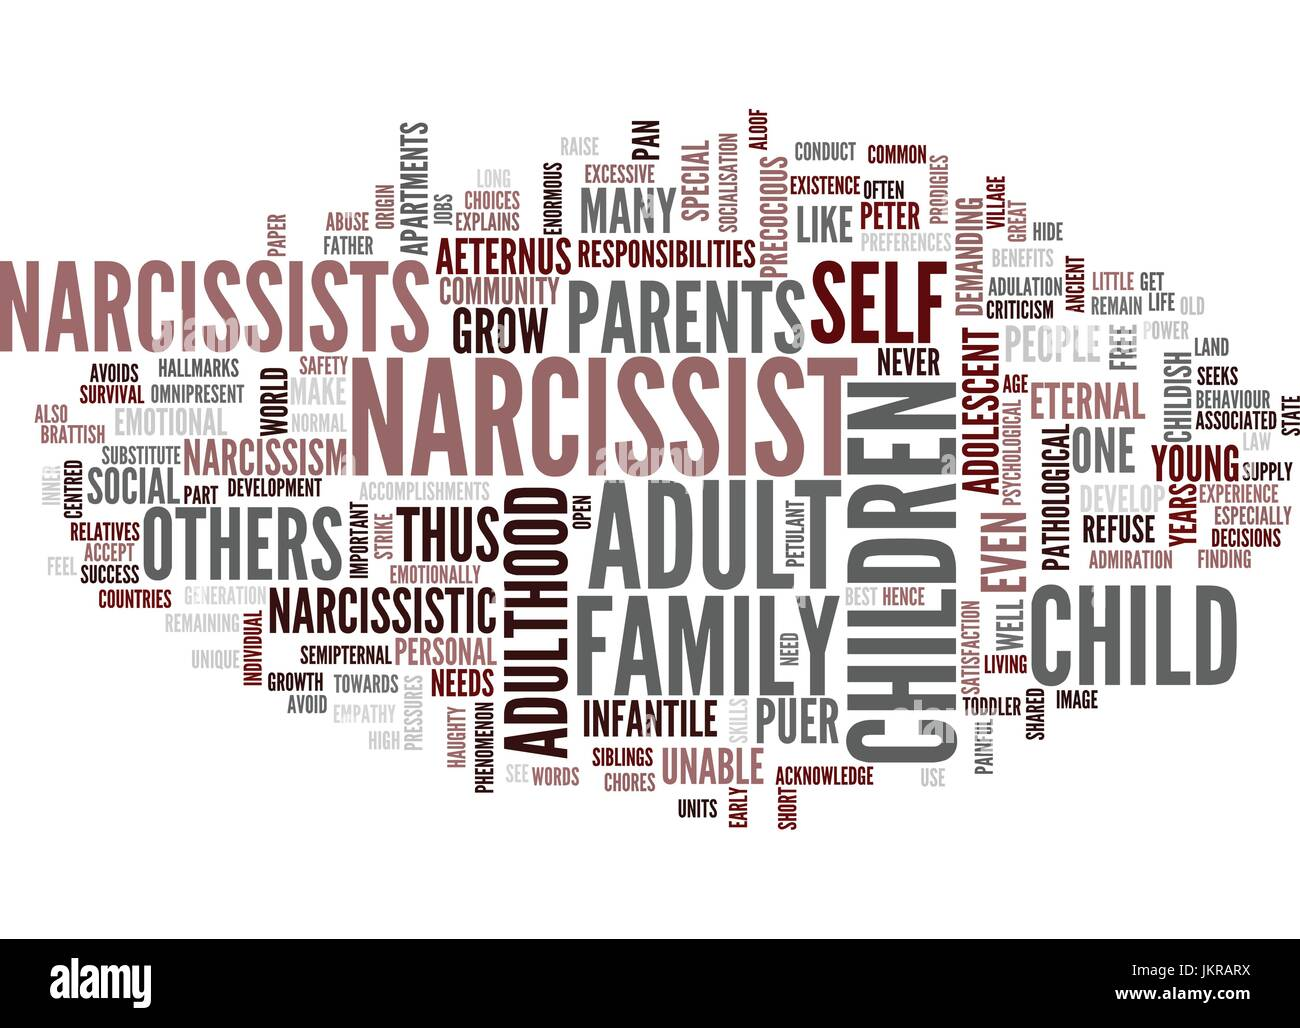 THE NARCISSIST AS ETERNAL CHILD Text Background Word Cloud Concept - Stock Vector